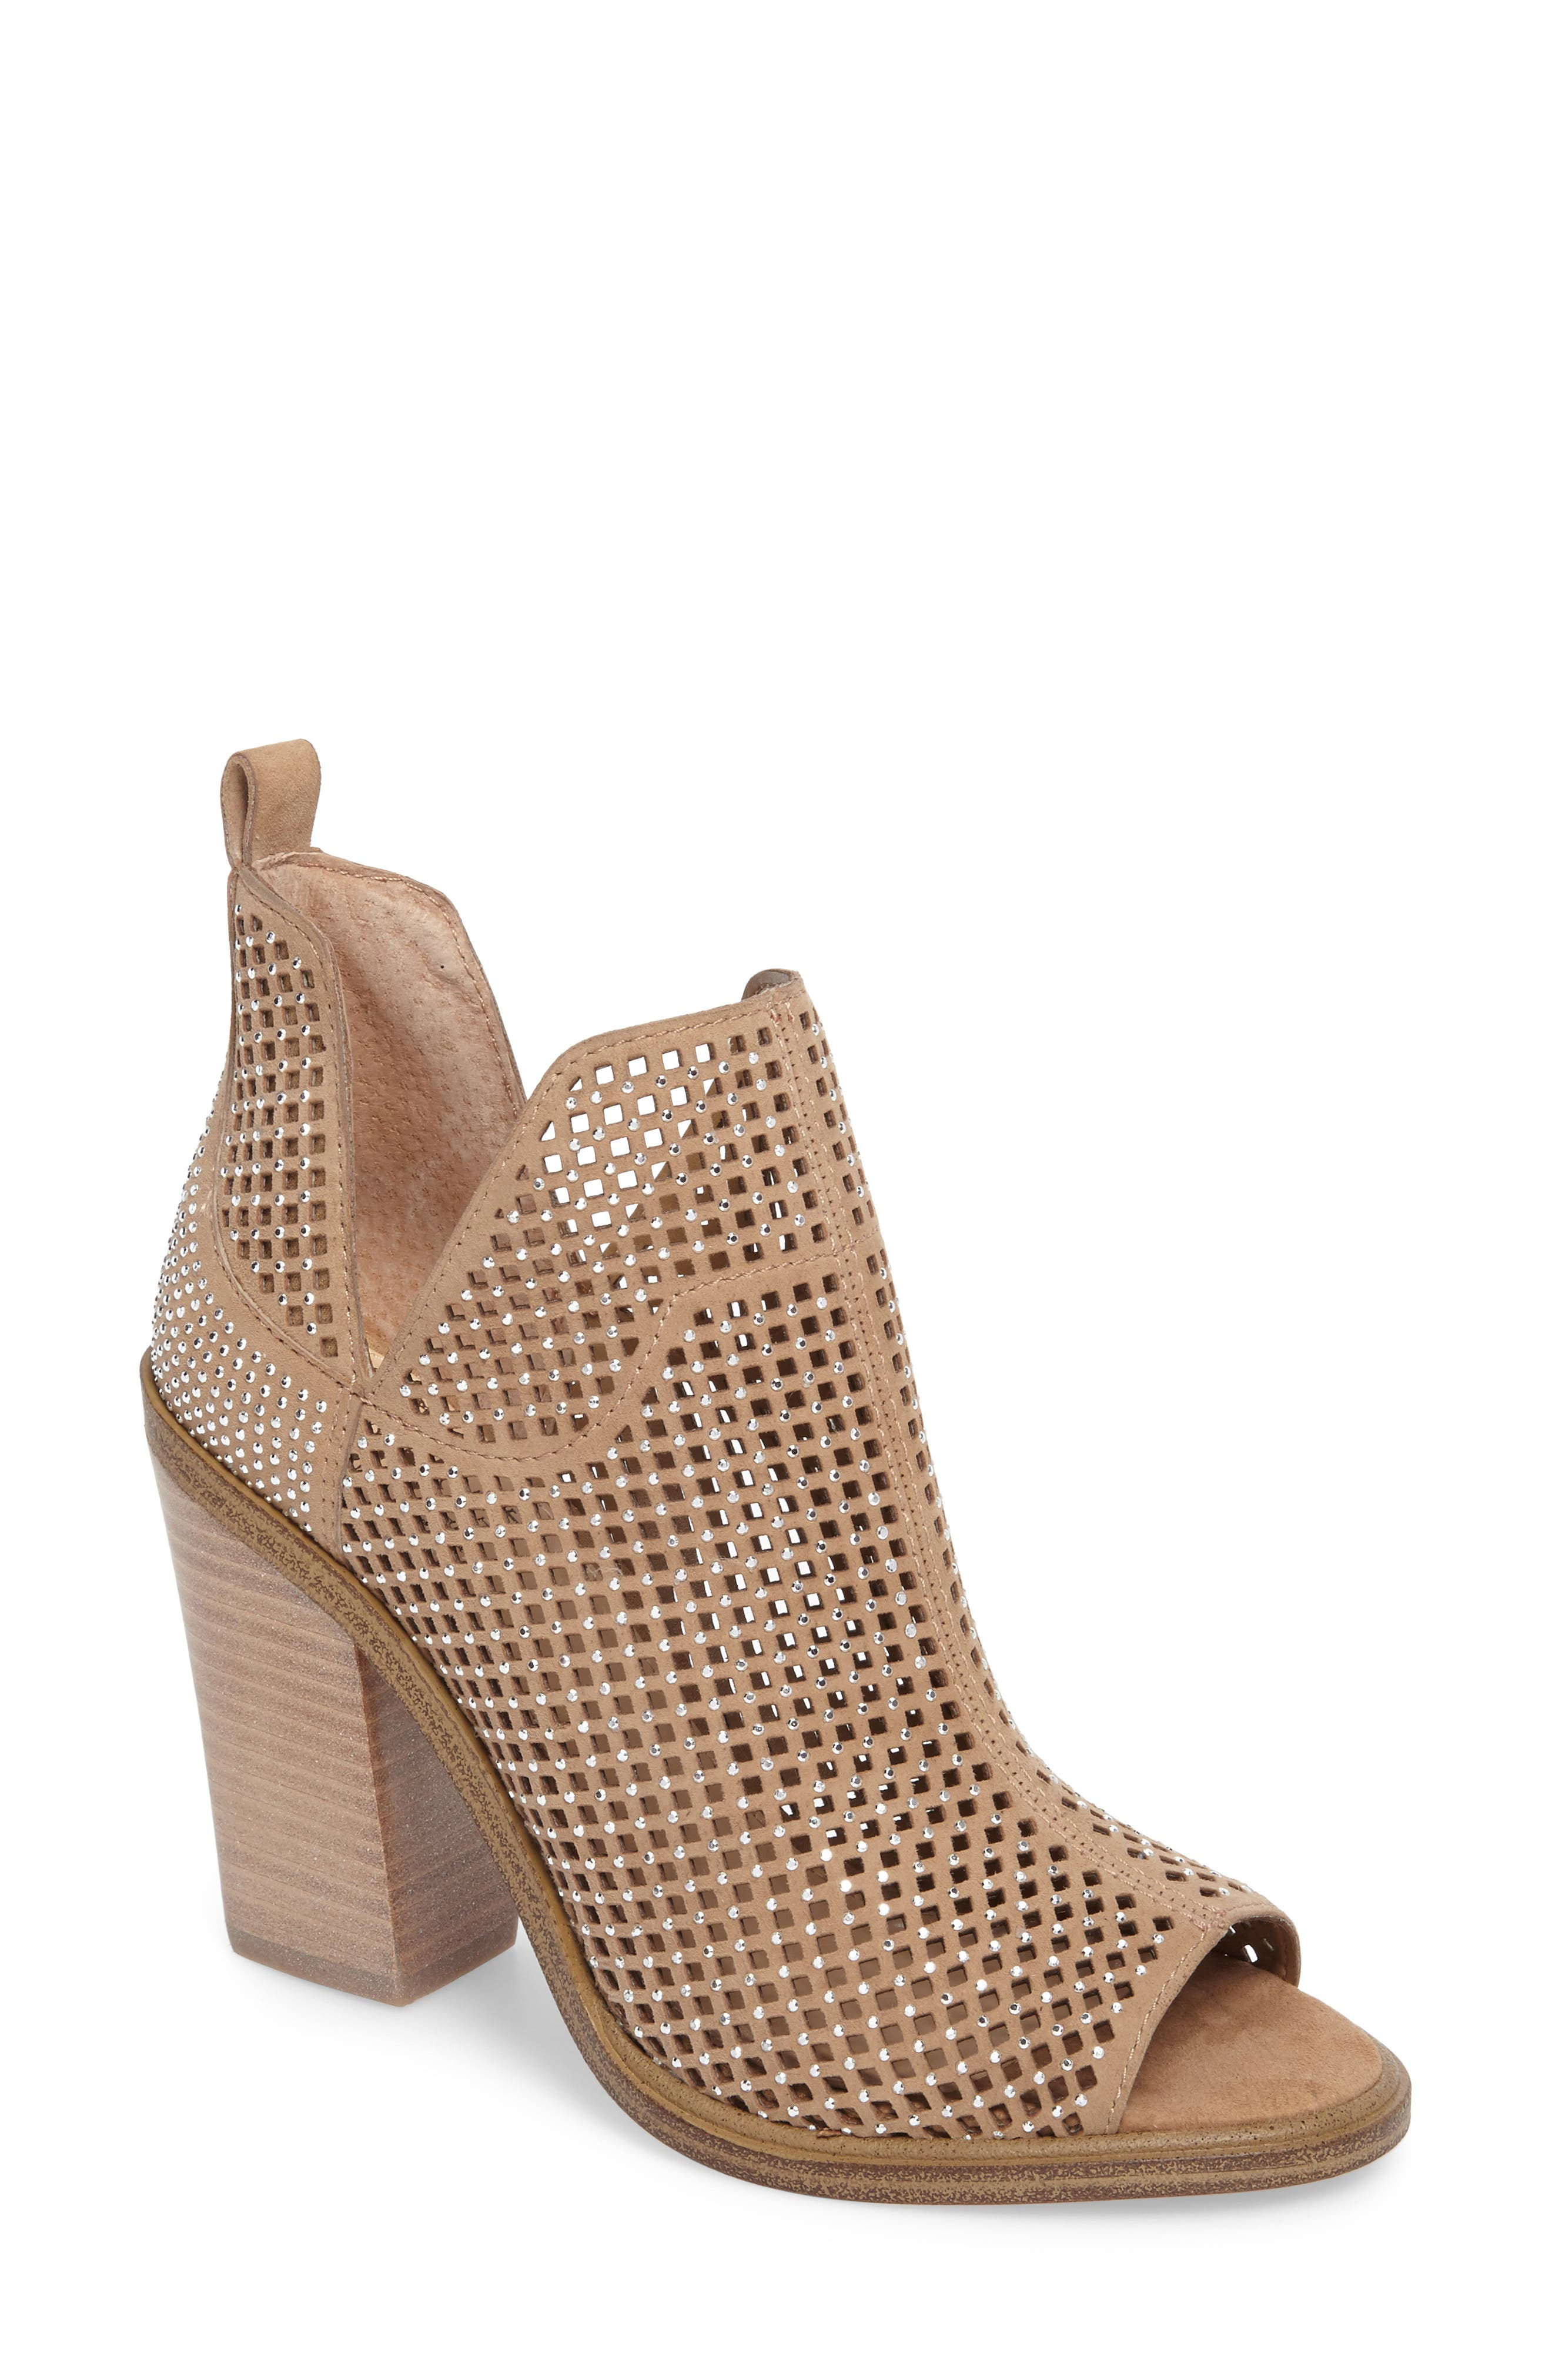 Main Image - Vince Camuto Kiminni Open Toe Bootie (Women)